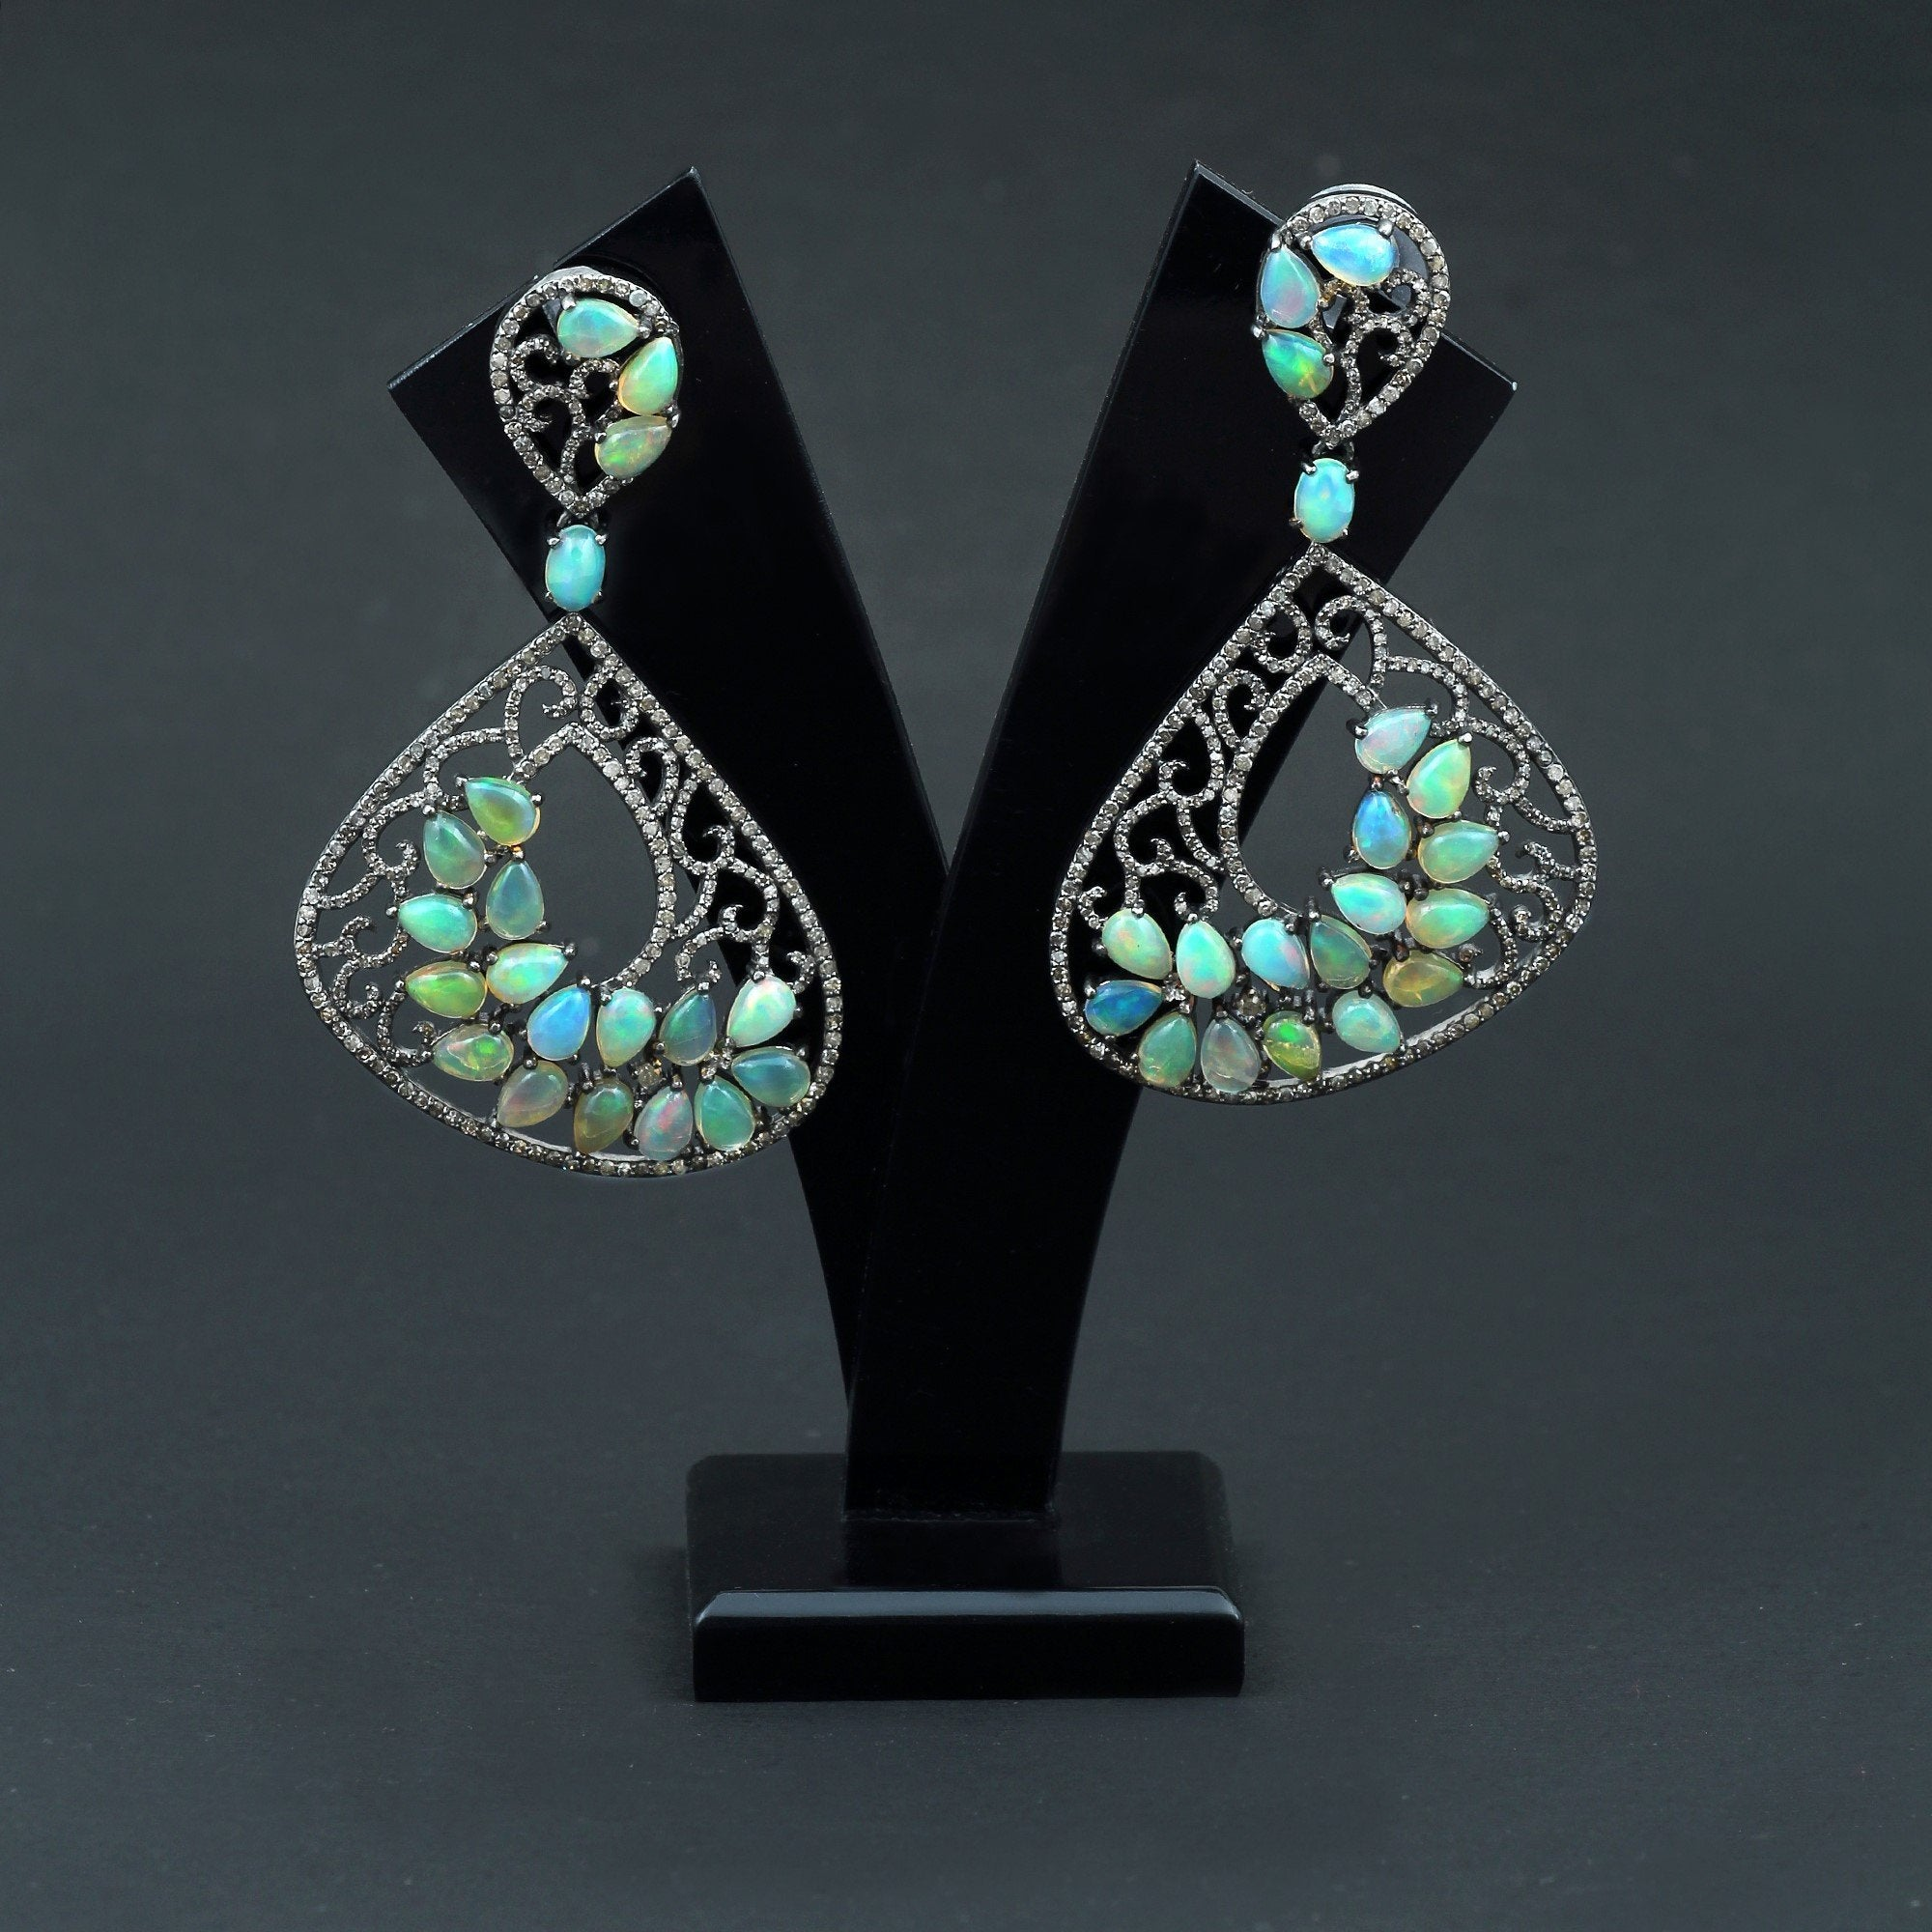 Ethopian Opal & Diamond Earrings 925 Sterling Silver